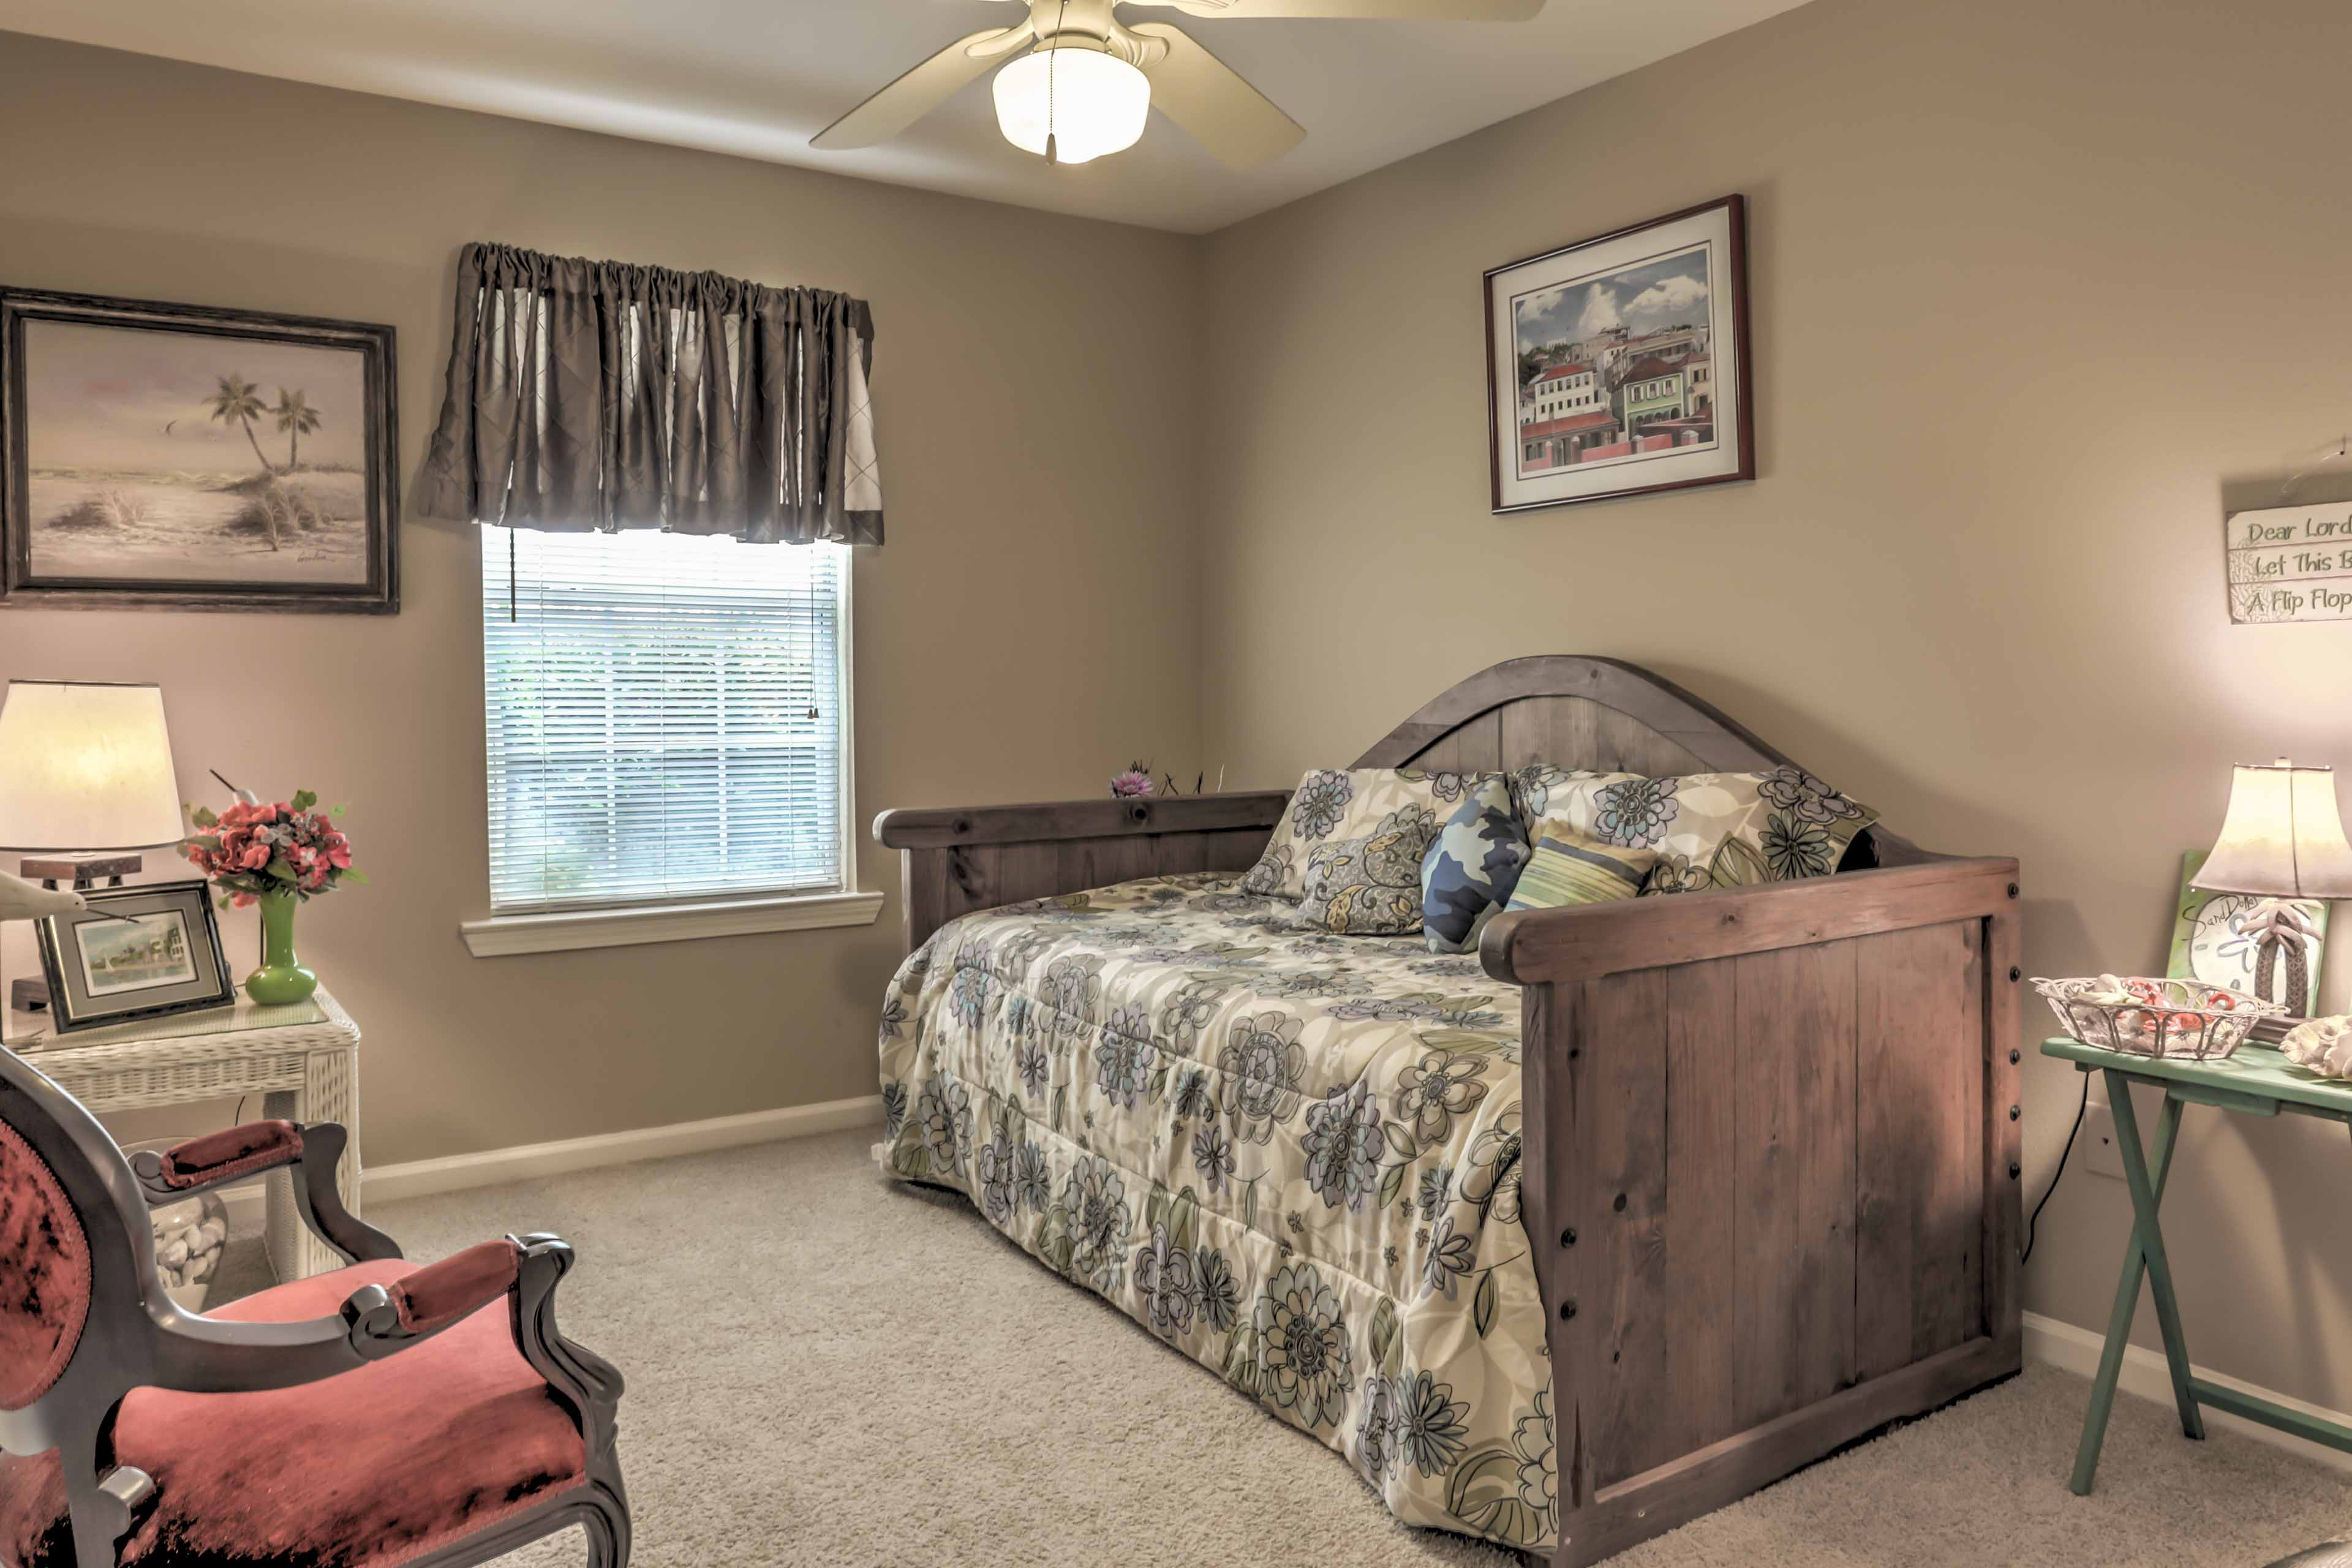 This bedroom features a twin-sized day bed.